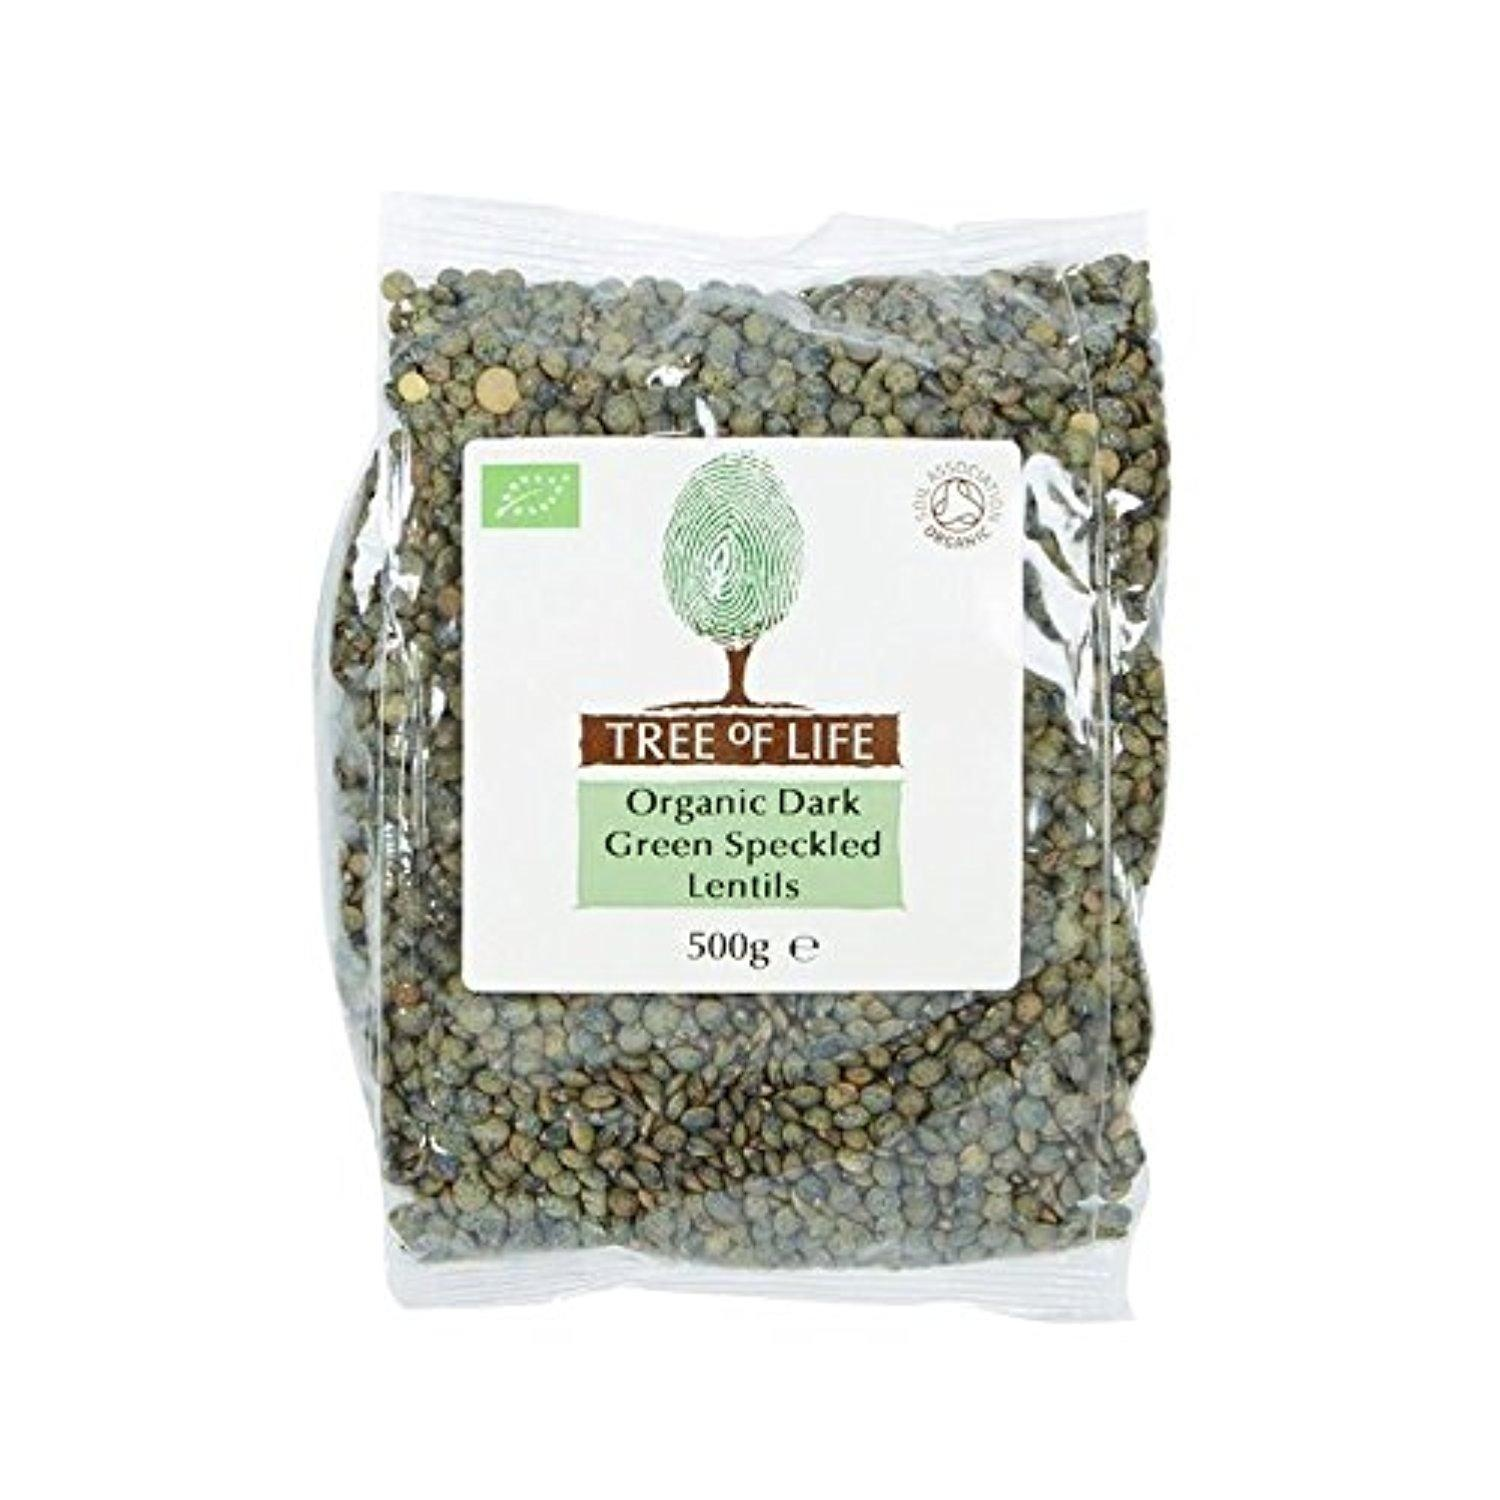 Tree of Life Organic Dark Green Speckled Lentils 500g - Pack of 2